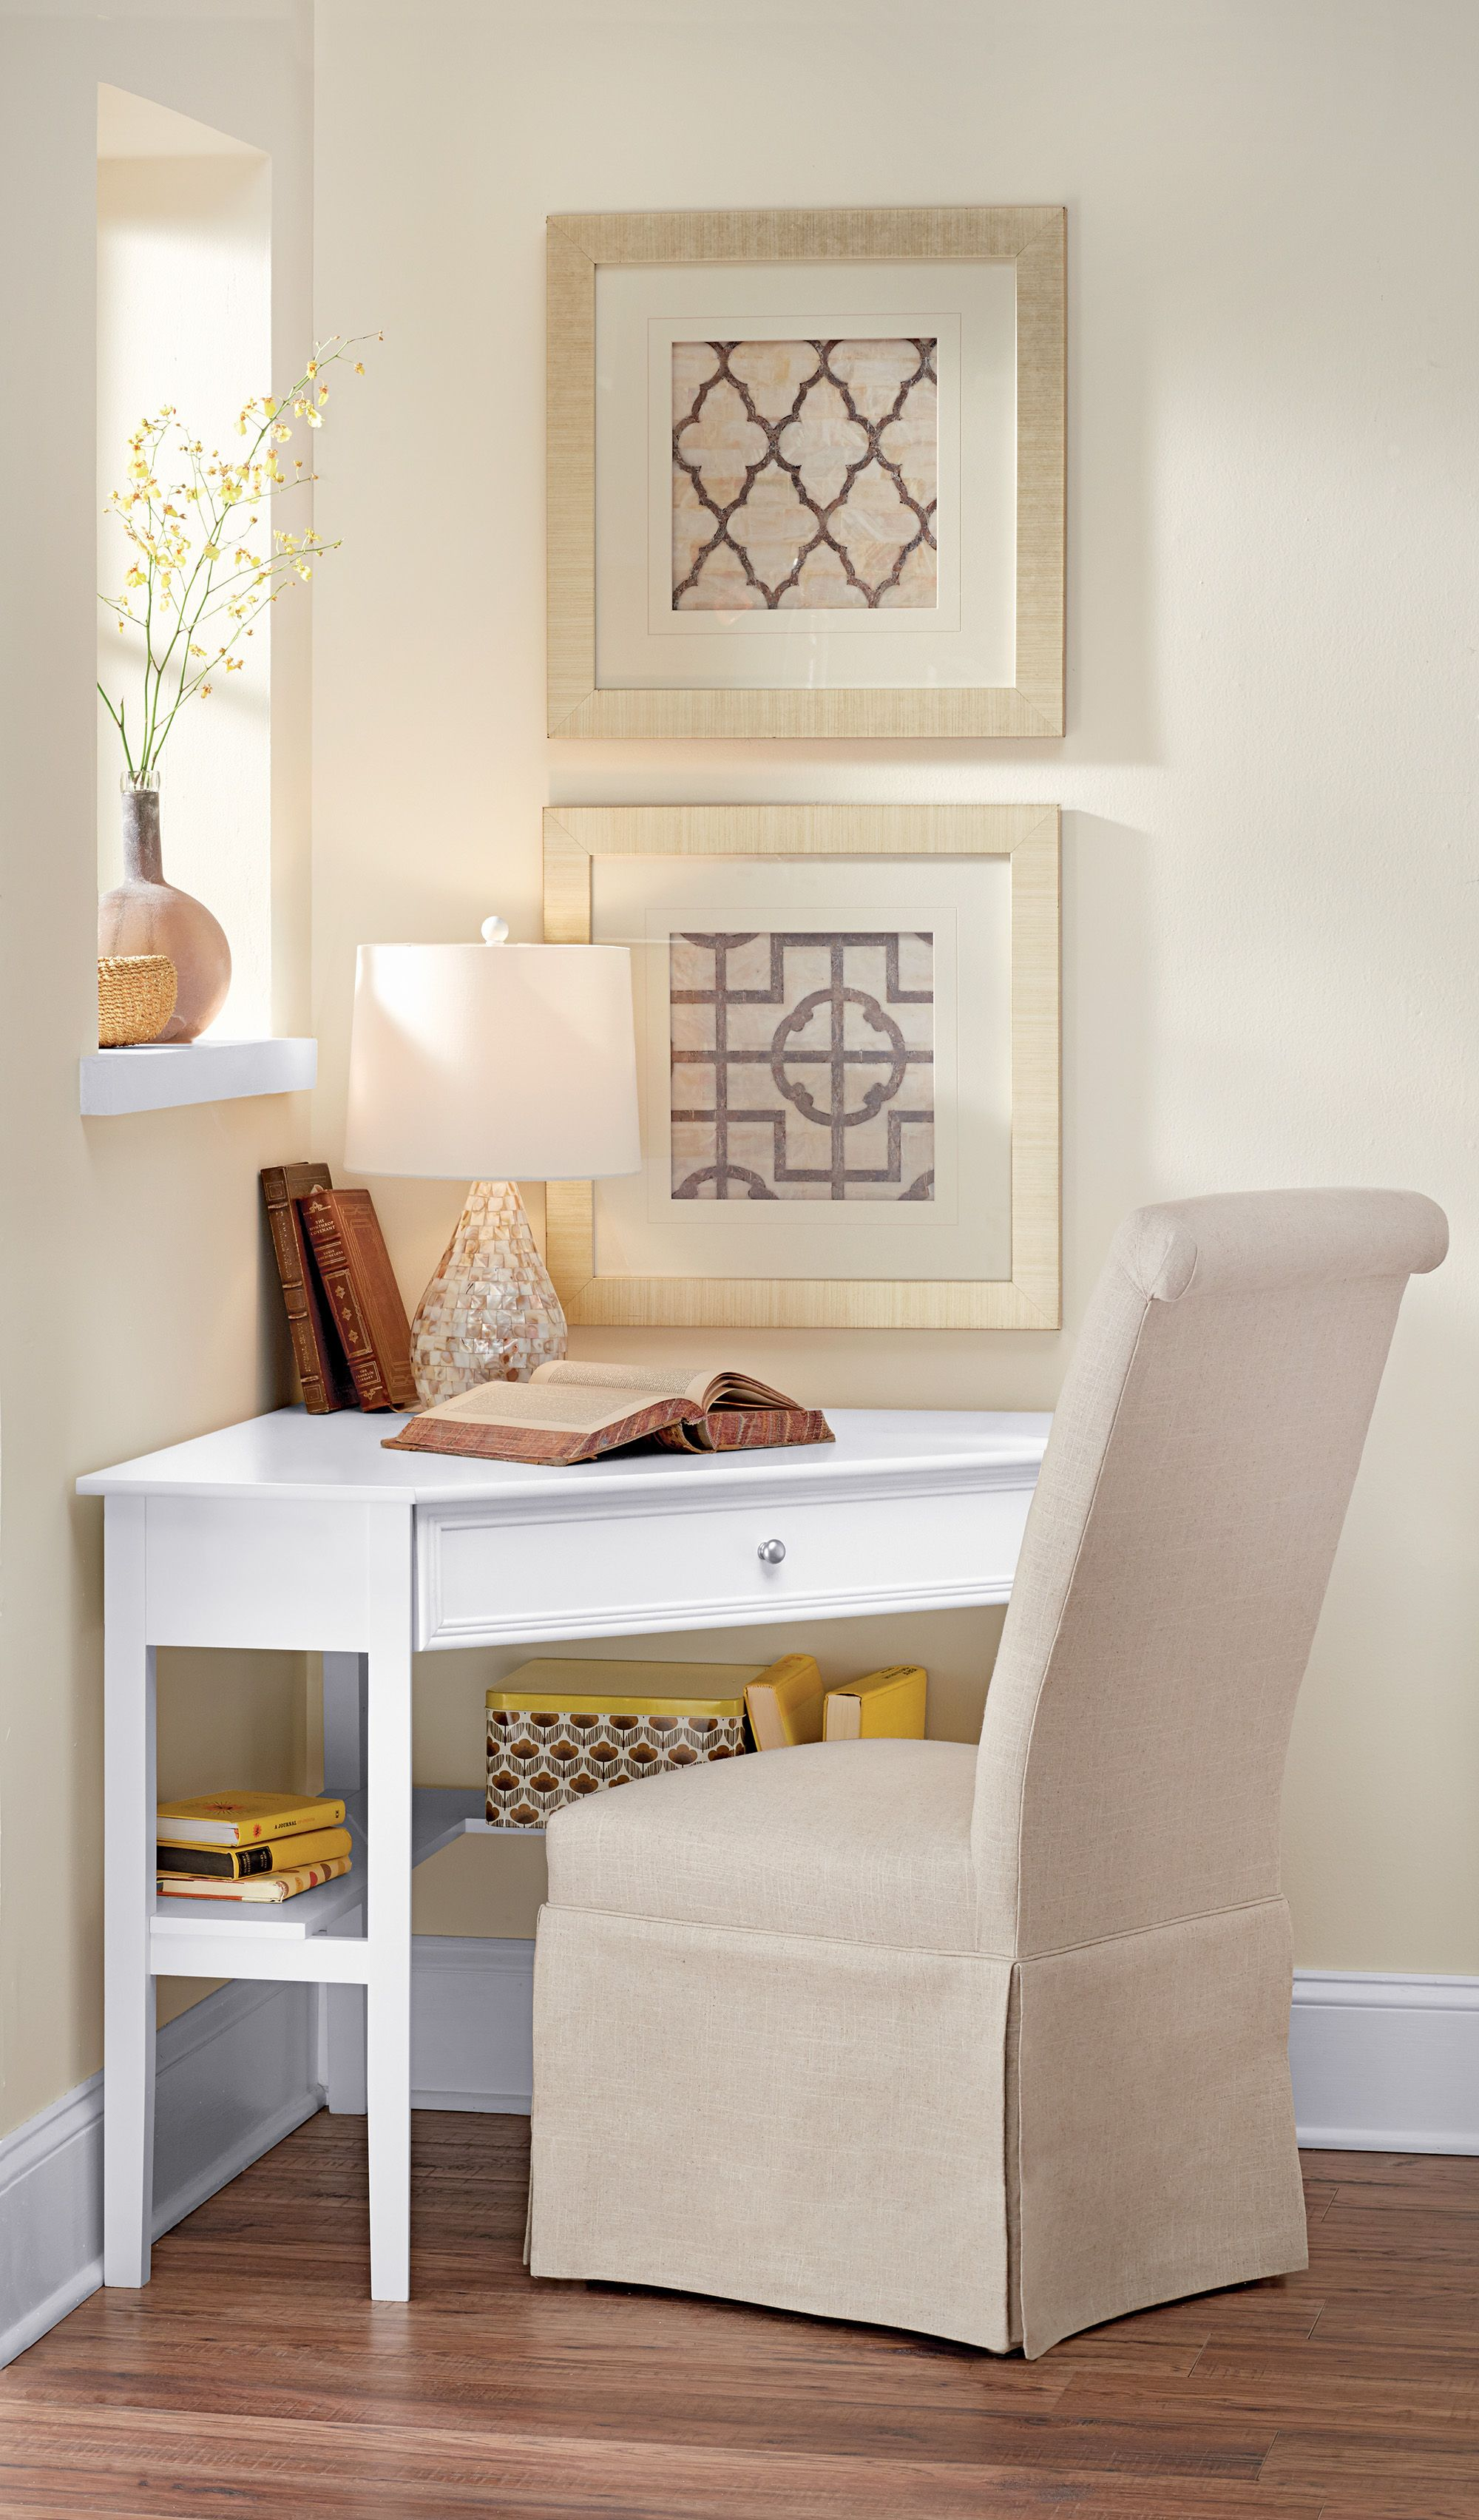 Oxford White Desk | Bedroom Desk | Small office furniture ...